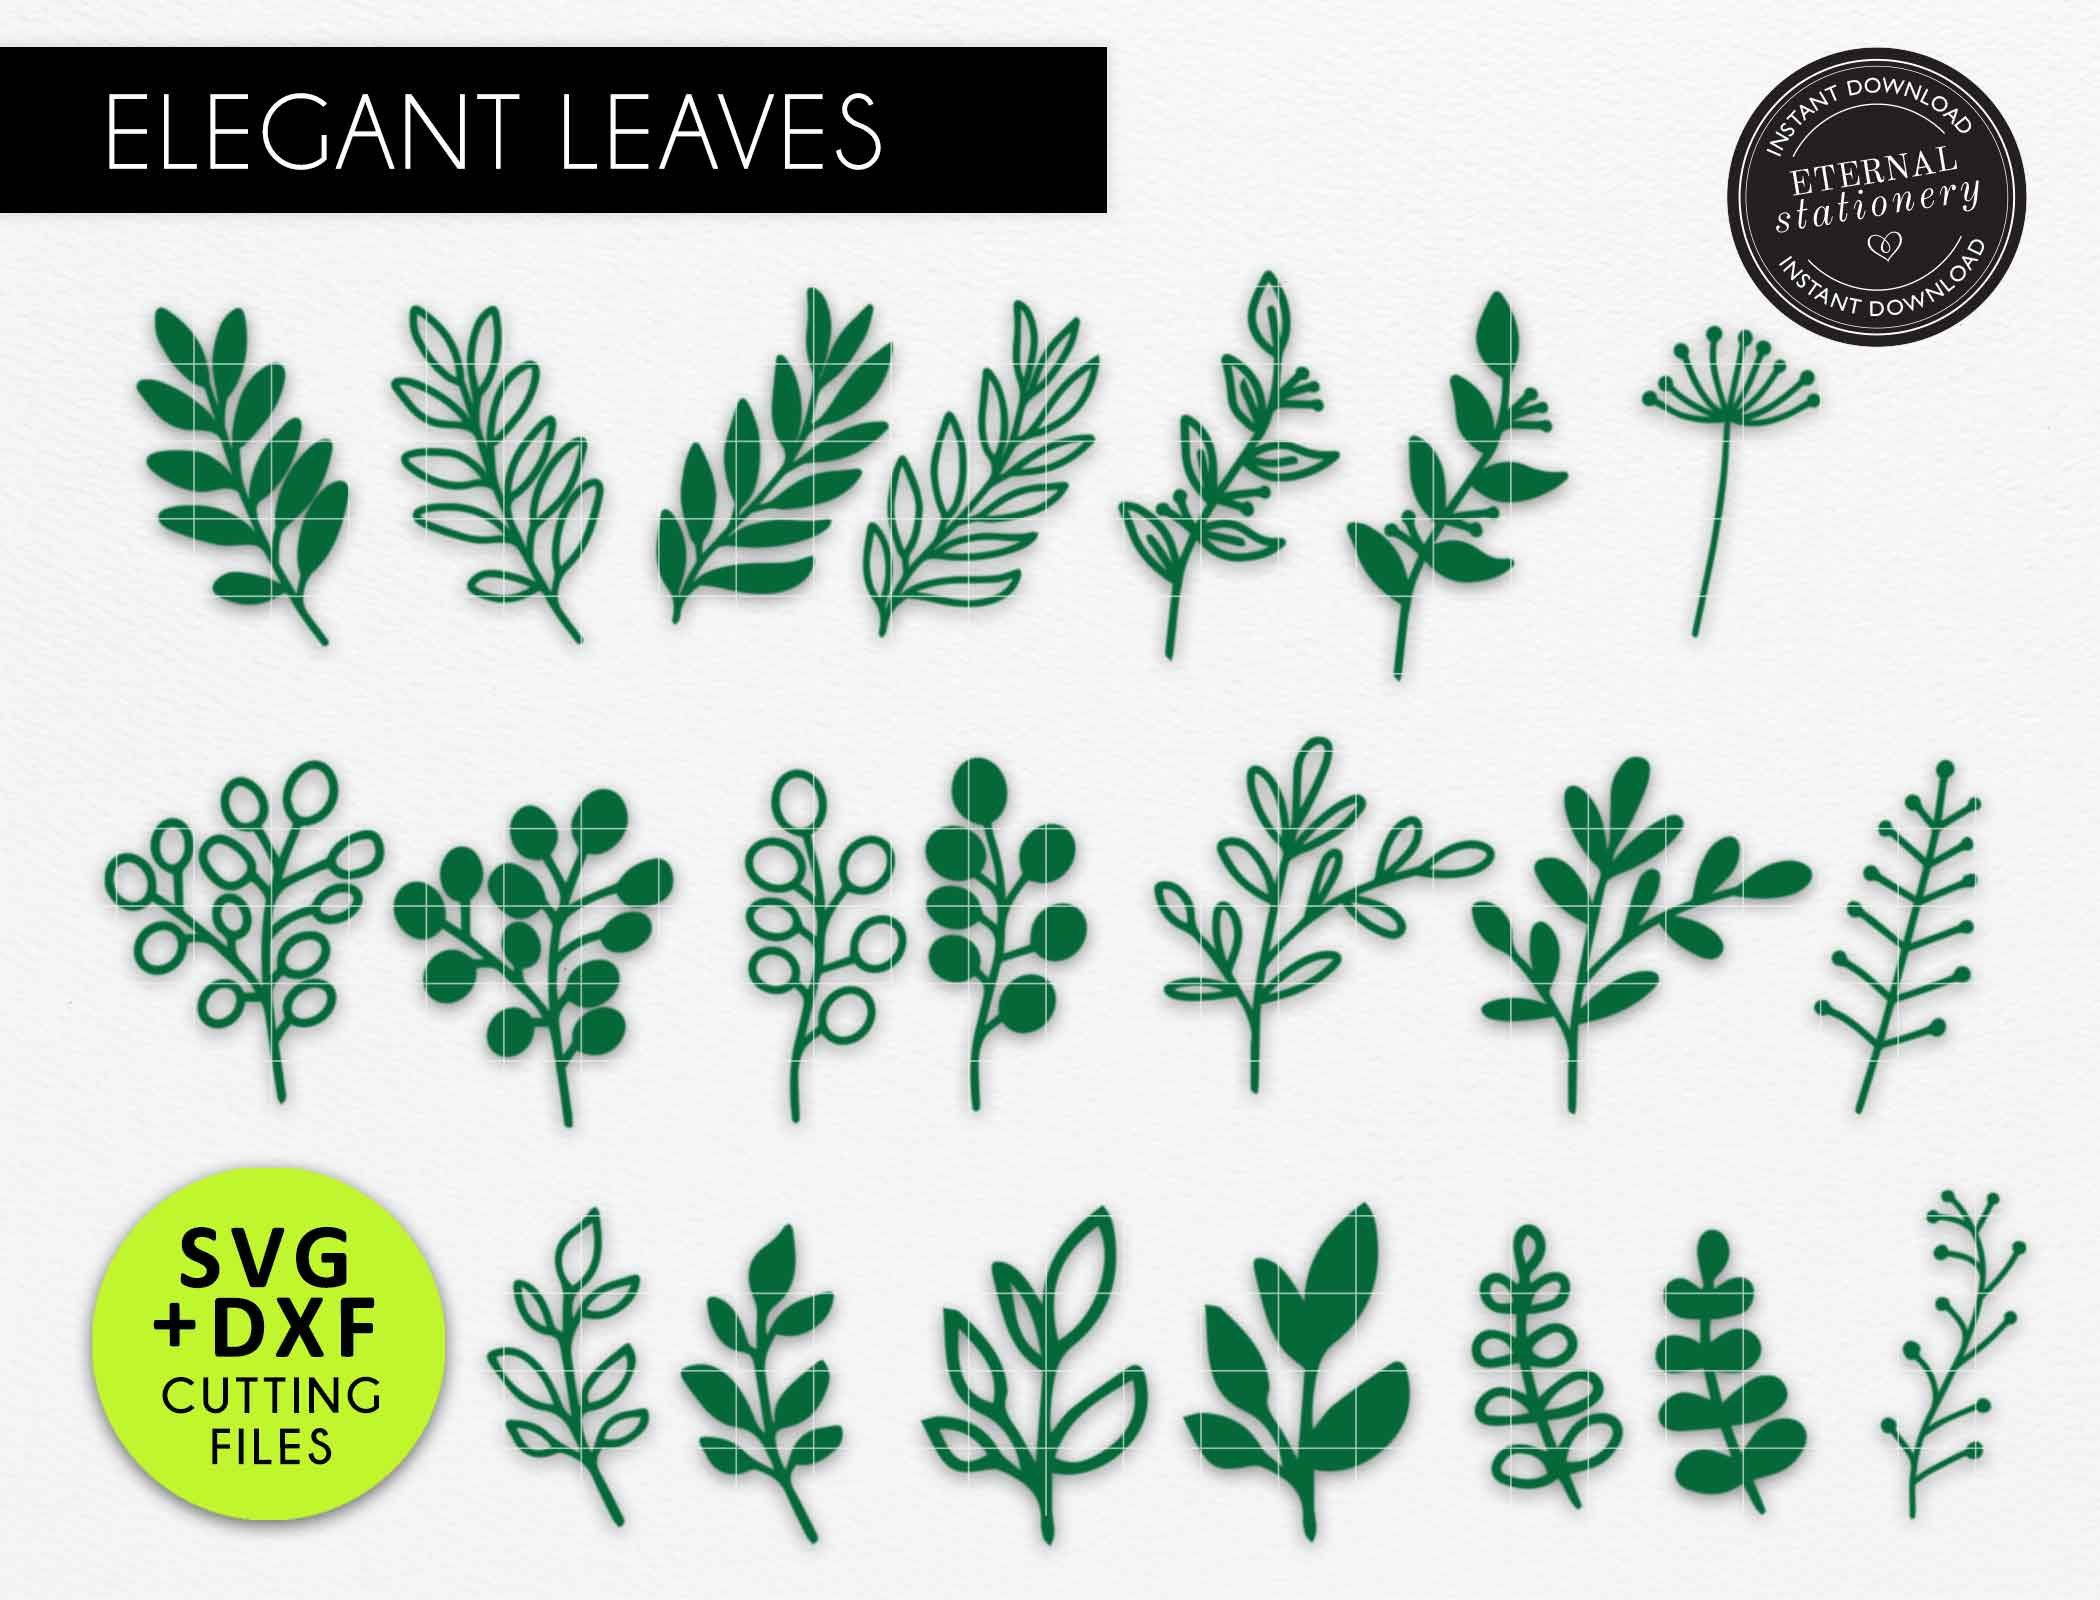 Paper AutumnFall Leave SVG Set of 17 Leaves of two layers Leaves Template CricutSilhouette Ready Paper Flower Leaves